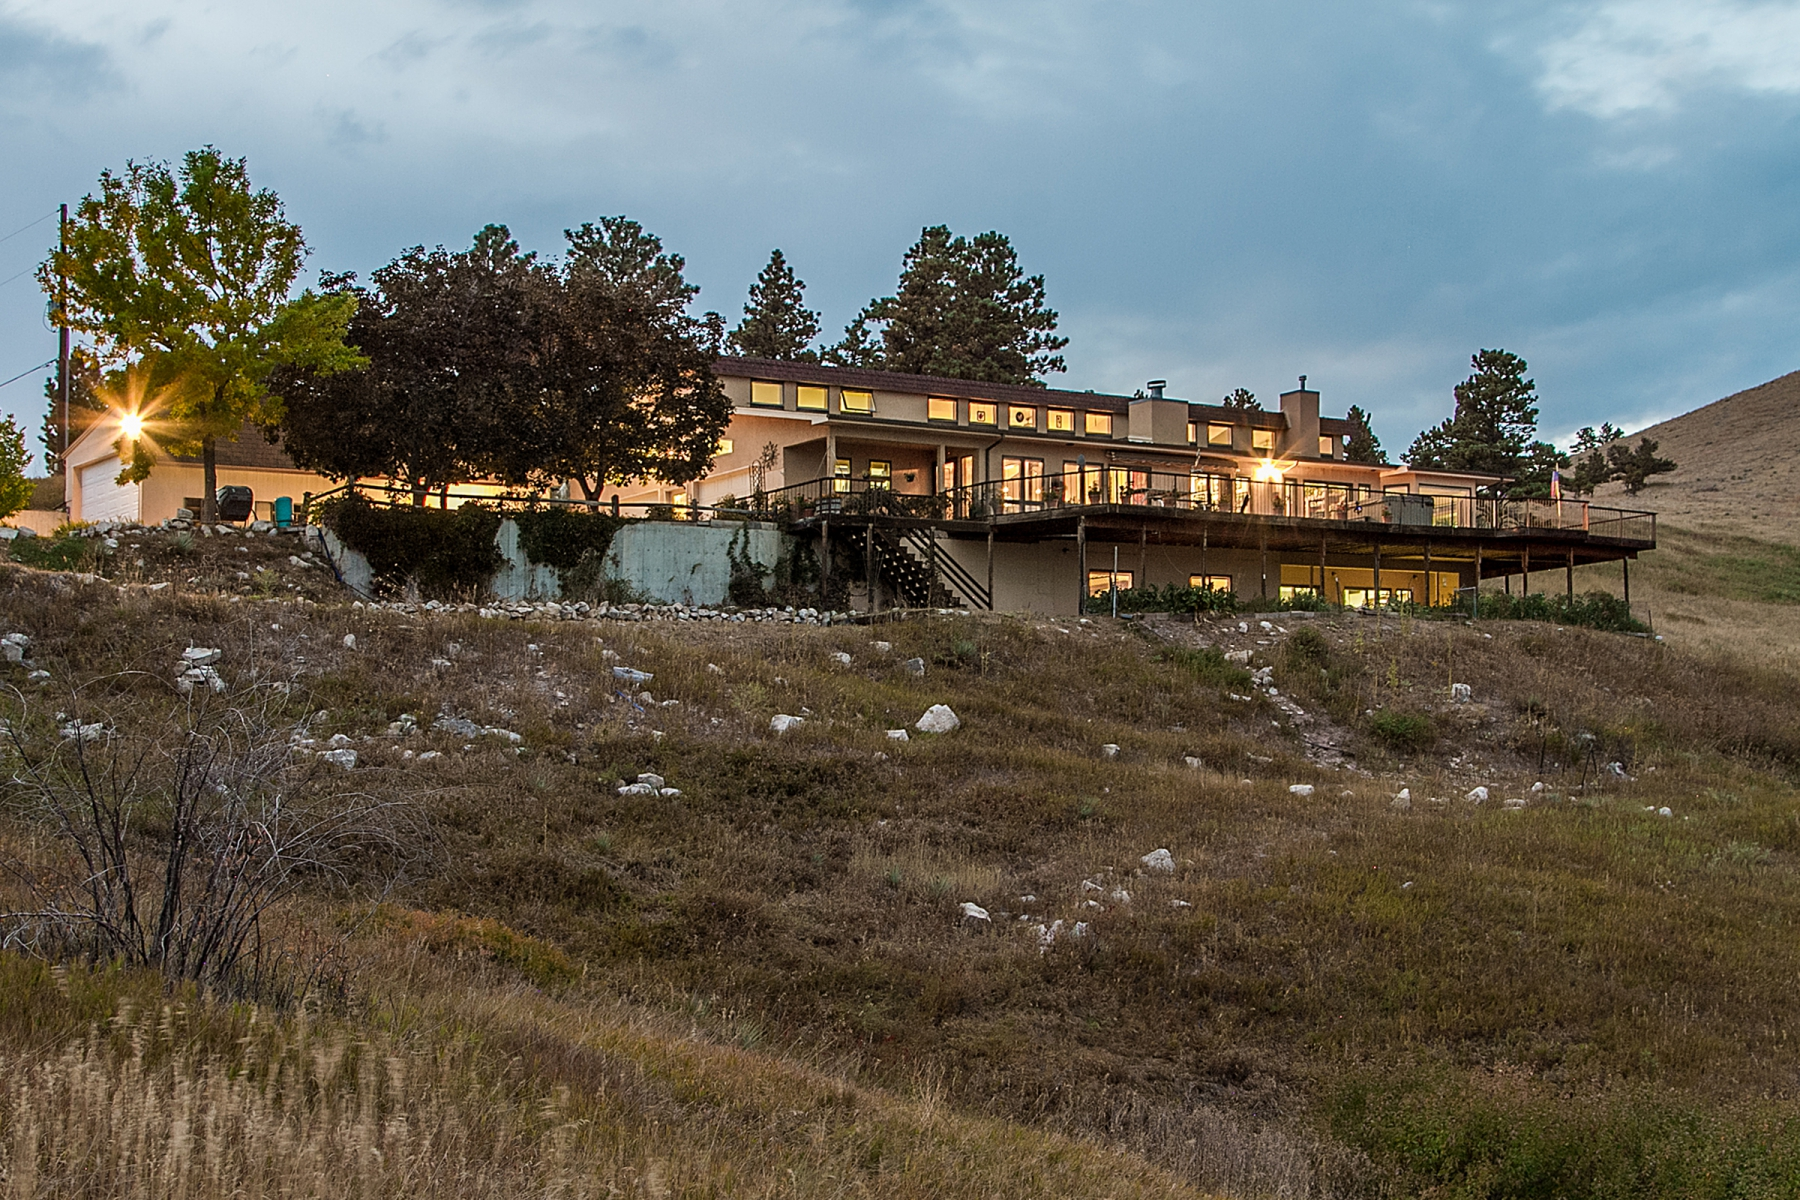 Single Family Home for Sale at Custom Home on 38 Acres 7372 Olde Stage Rd Boulder, Colorado, 80302 United States